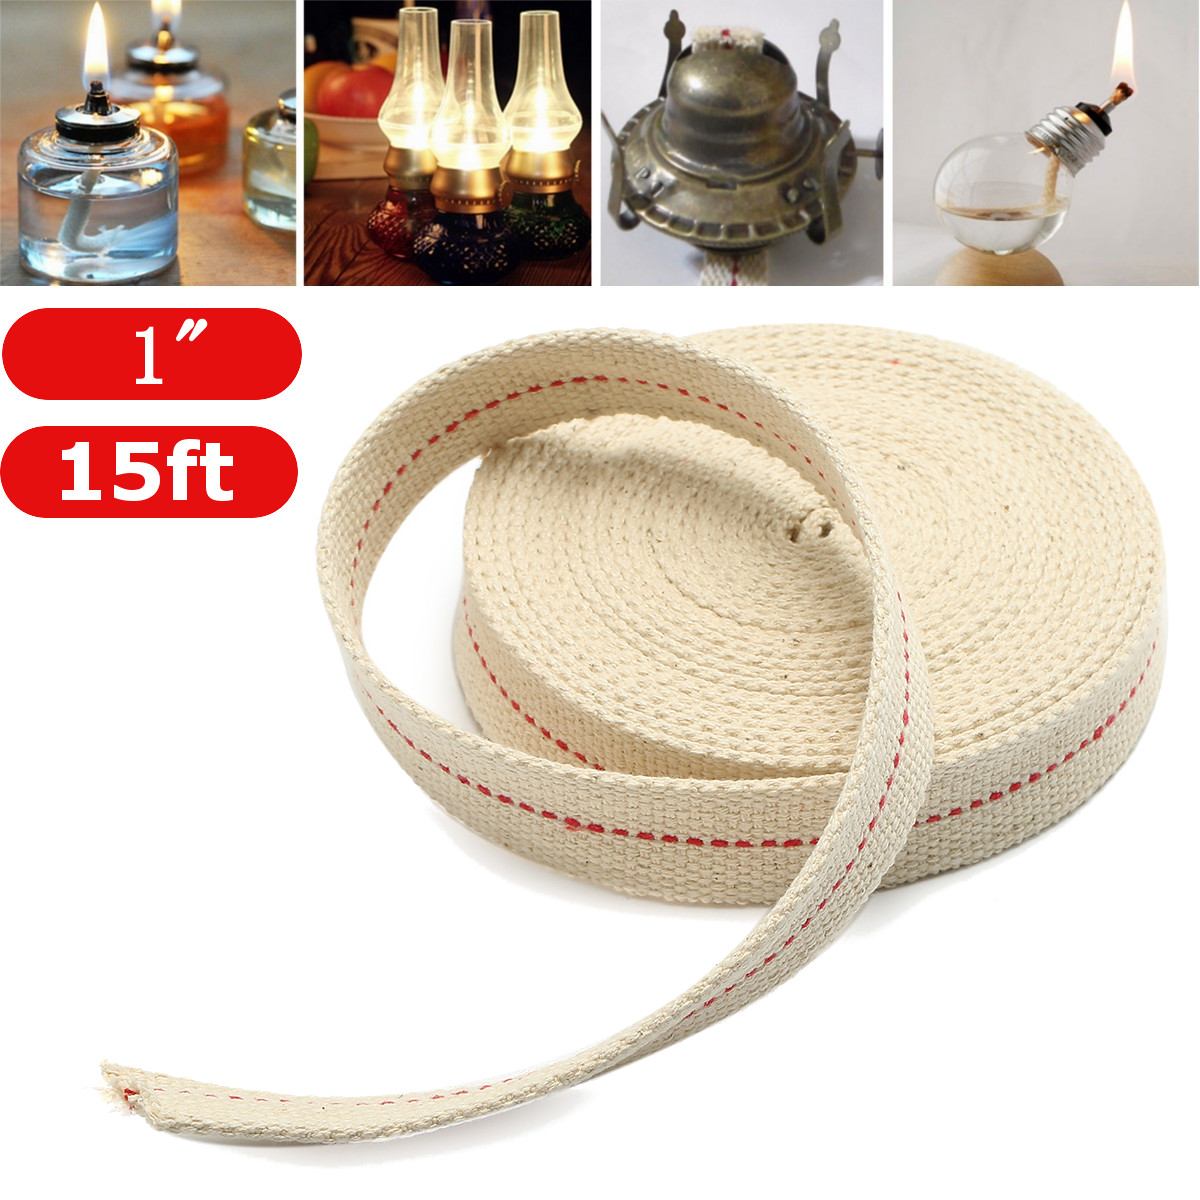 15 Foot Oil Lamp Mate Flat Wick Cotton Oil Lantern or Oil Lamp Wick Fiber Alcohol For Oil Lamps and Lanterns ,1'' 15ft... by